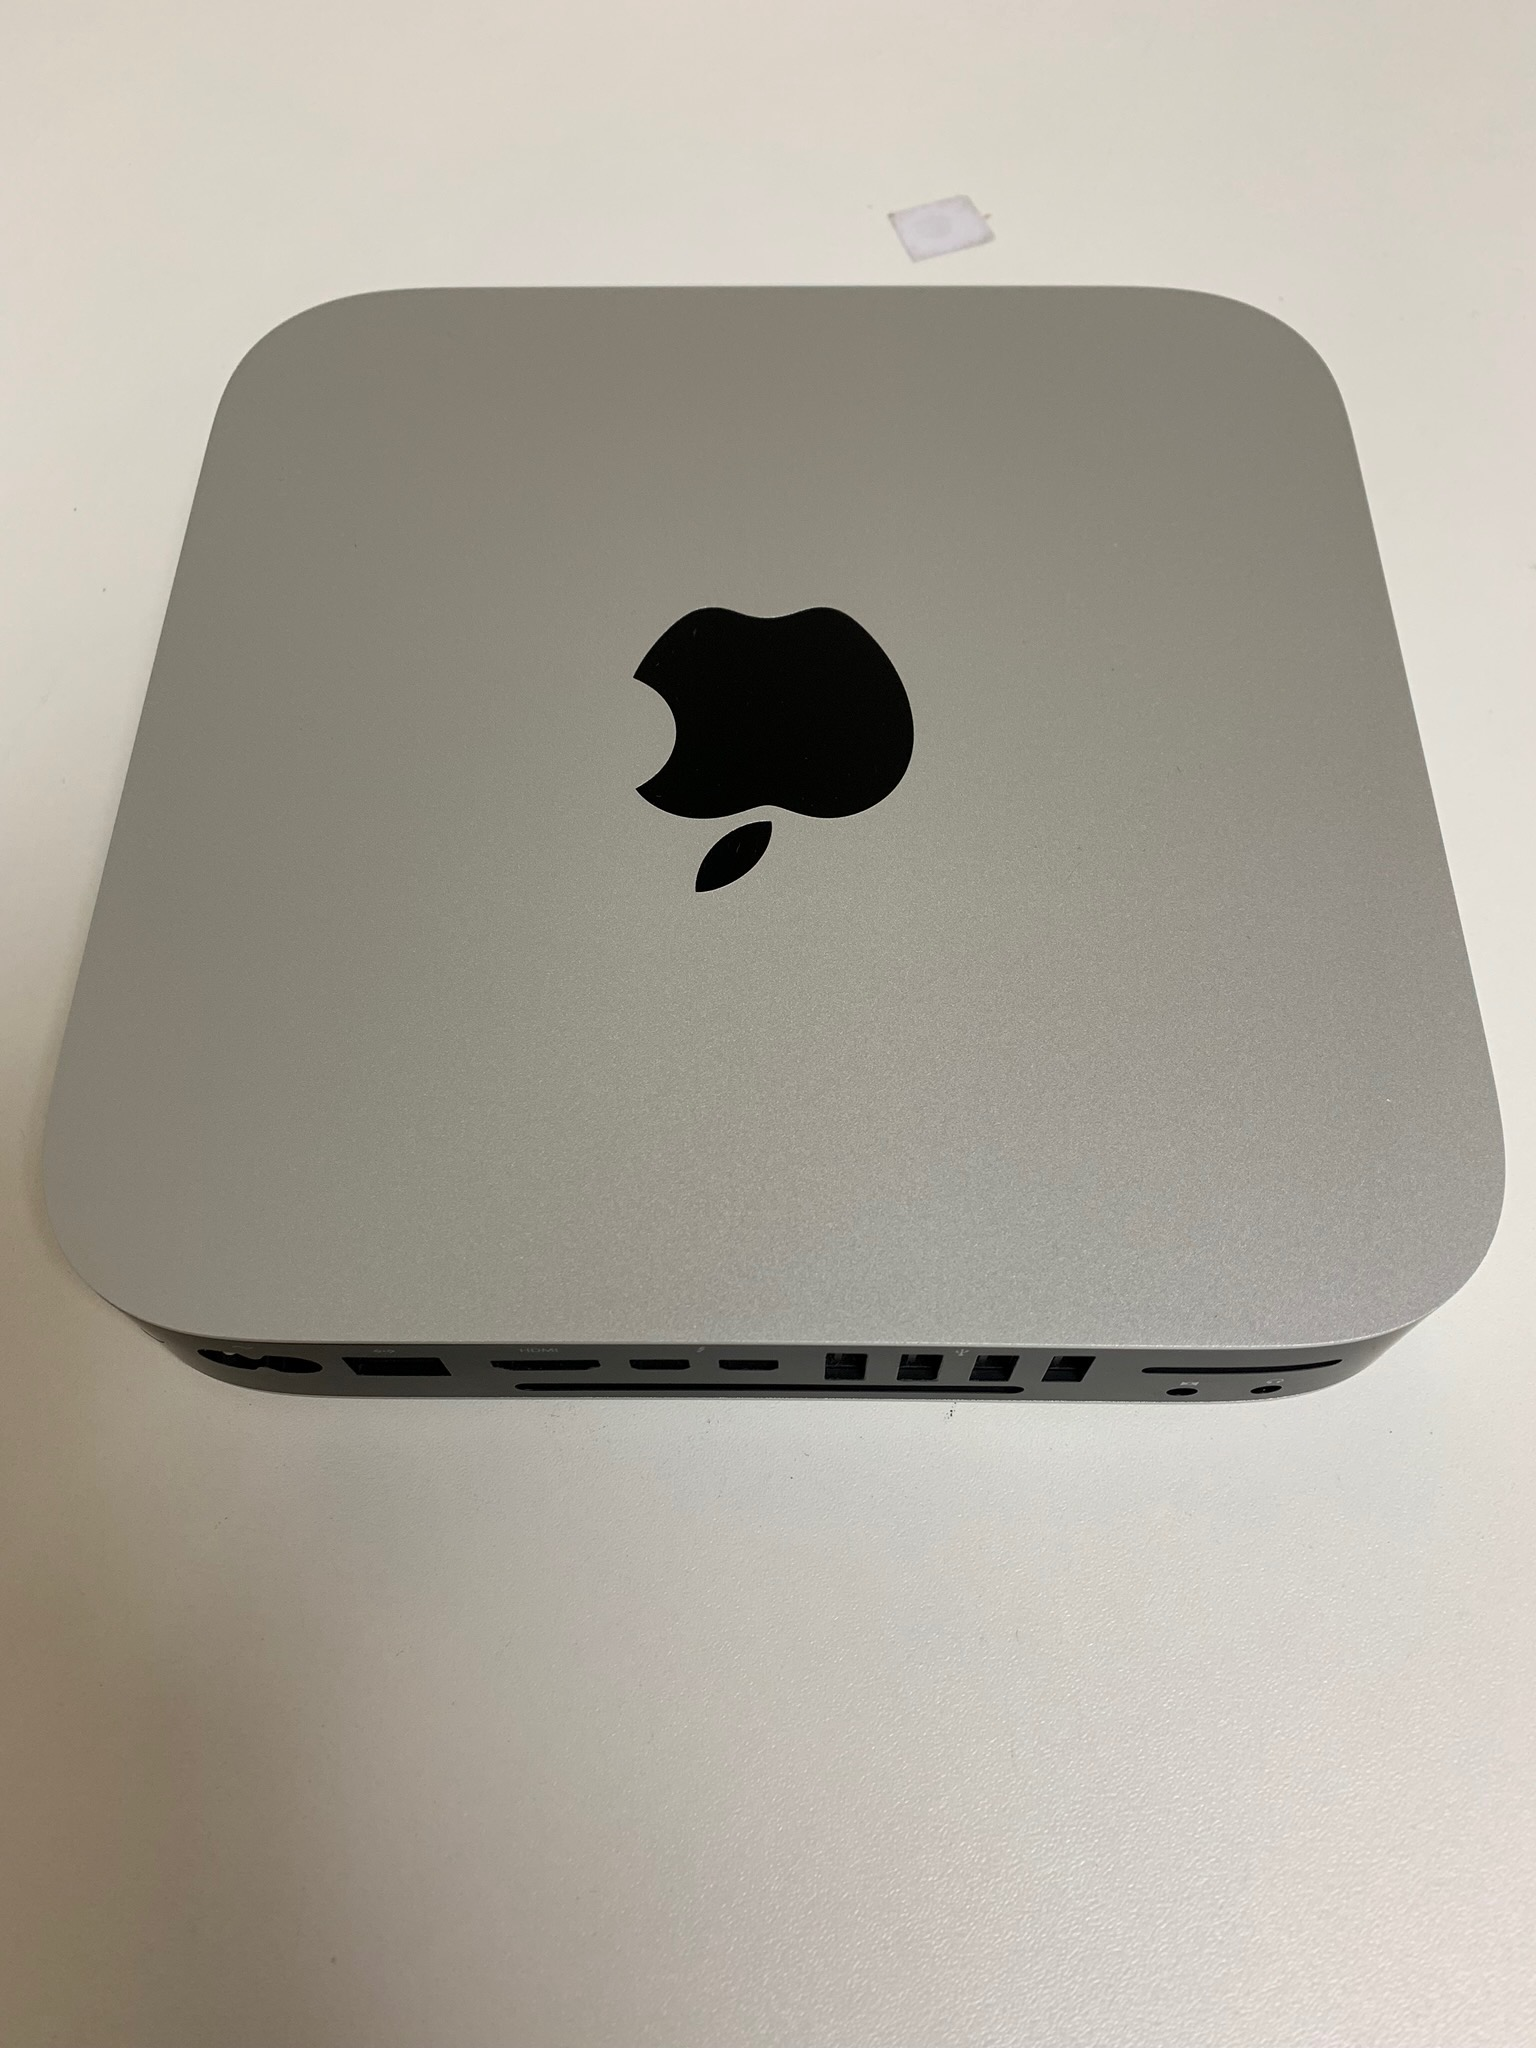 Mac Mini Late 2014 (Intel Core i5 2.8 GHz 16 GB RAM 512 GB SSD), 2.8 Intel Core i5, 16 GB , 500 GB SSD, Bild 1